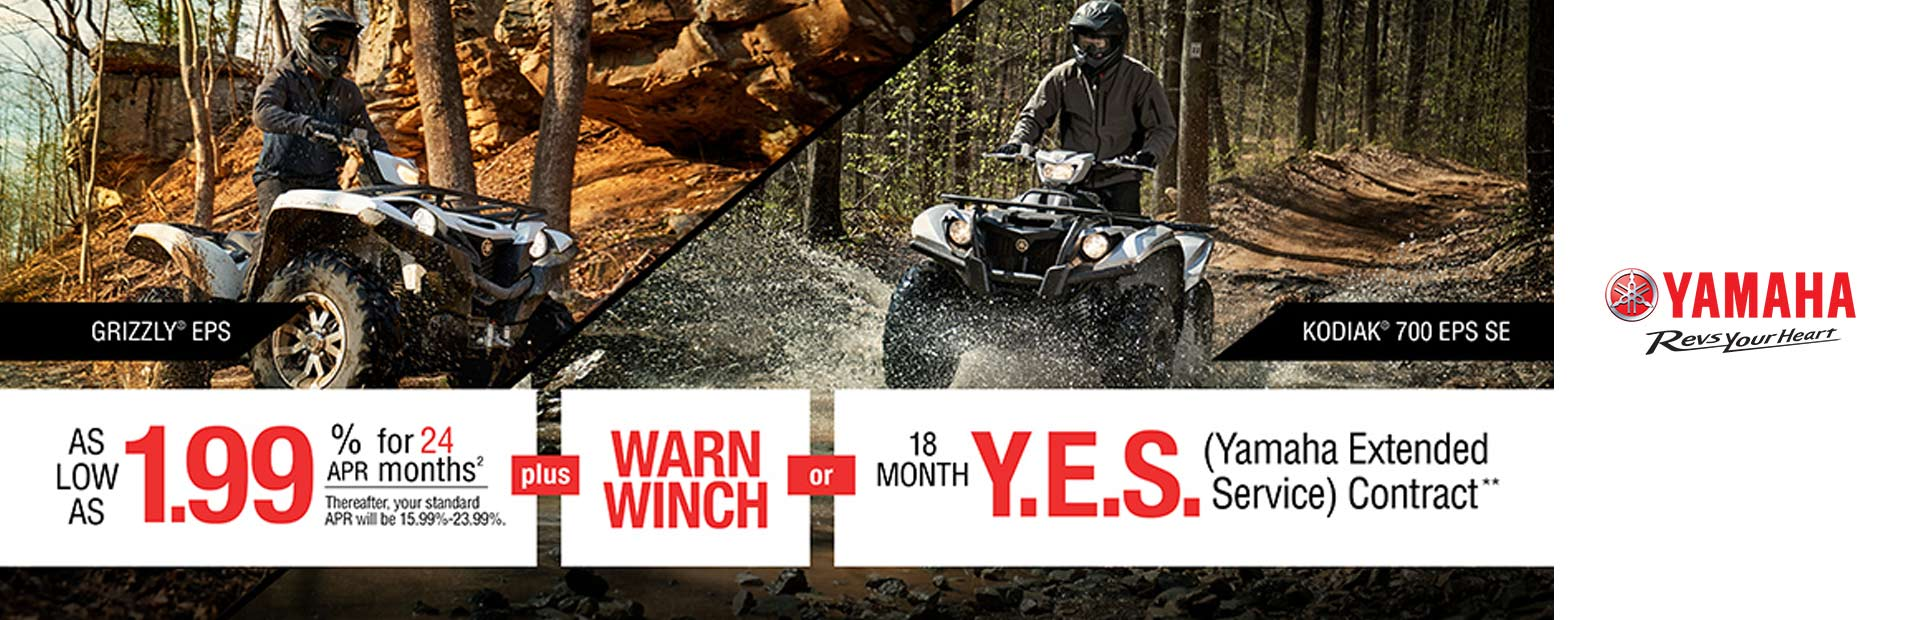 Yamaha: Free Warn® Winch -or- 18 Month Y.E.S. Contract